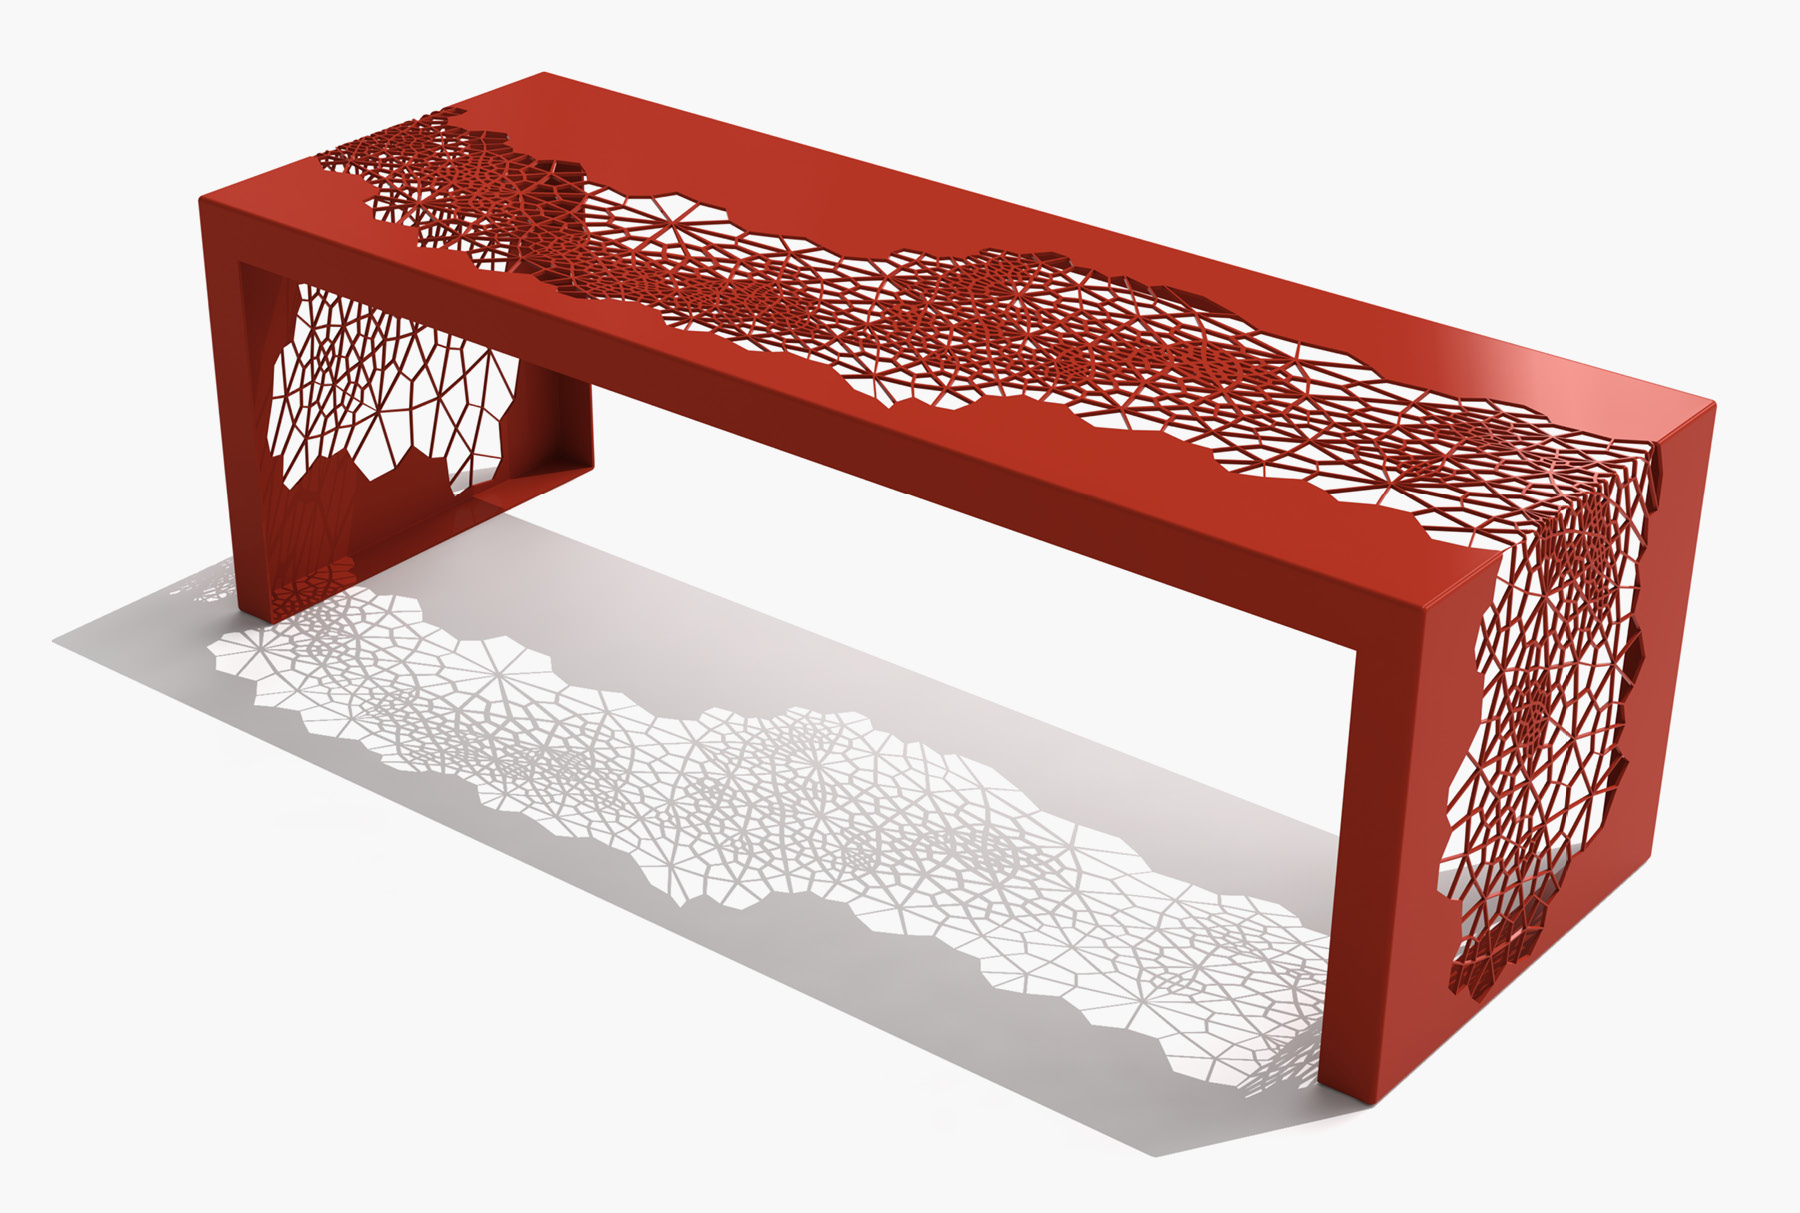 Arktura Hive Bench 50 in Spirit Red